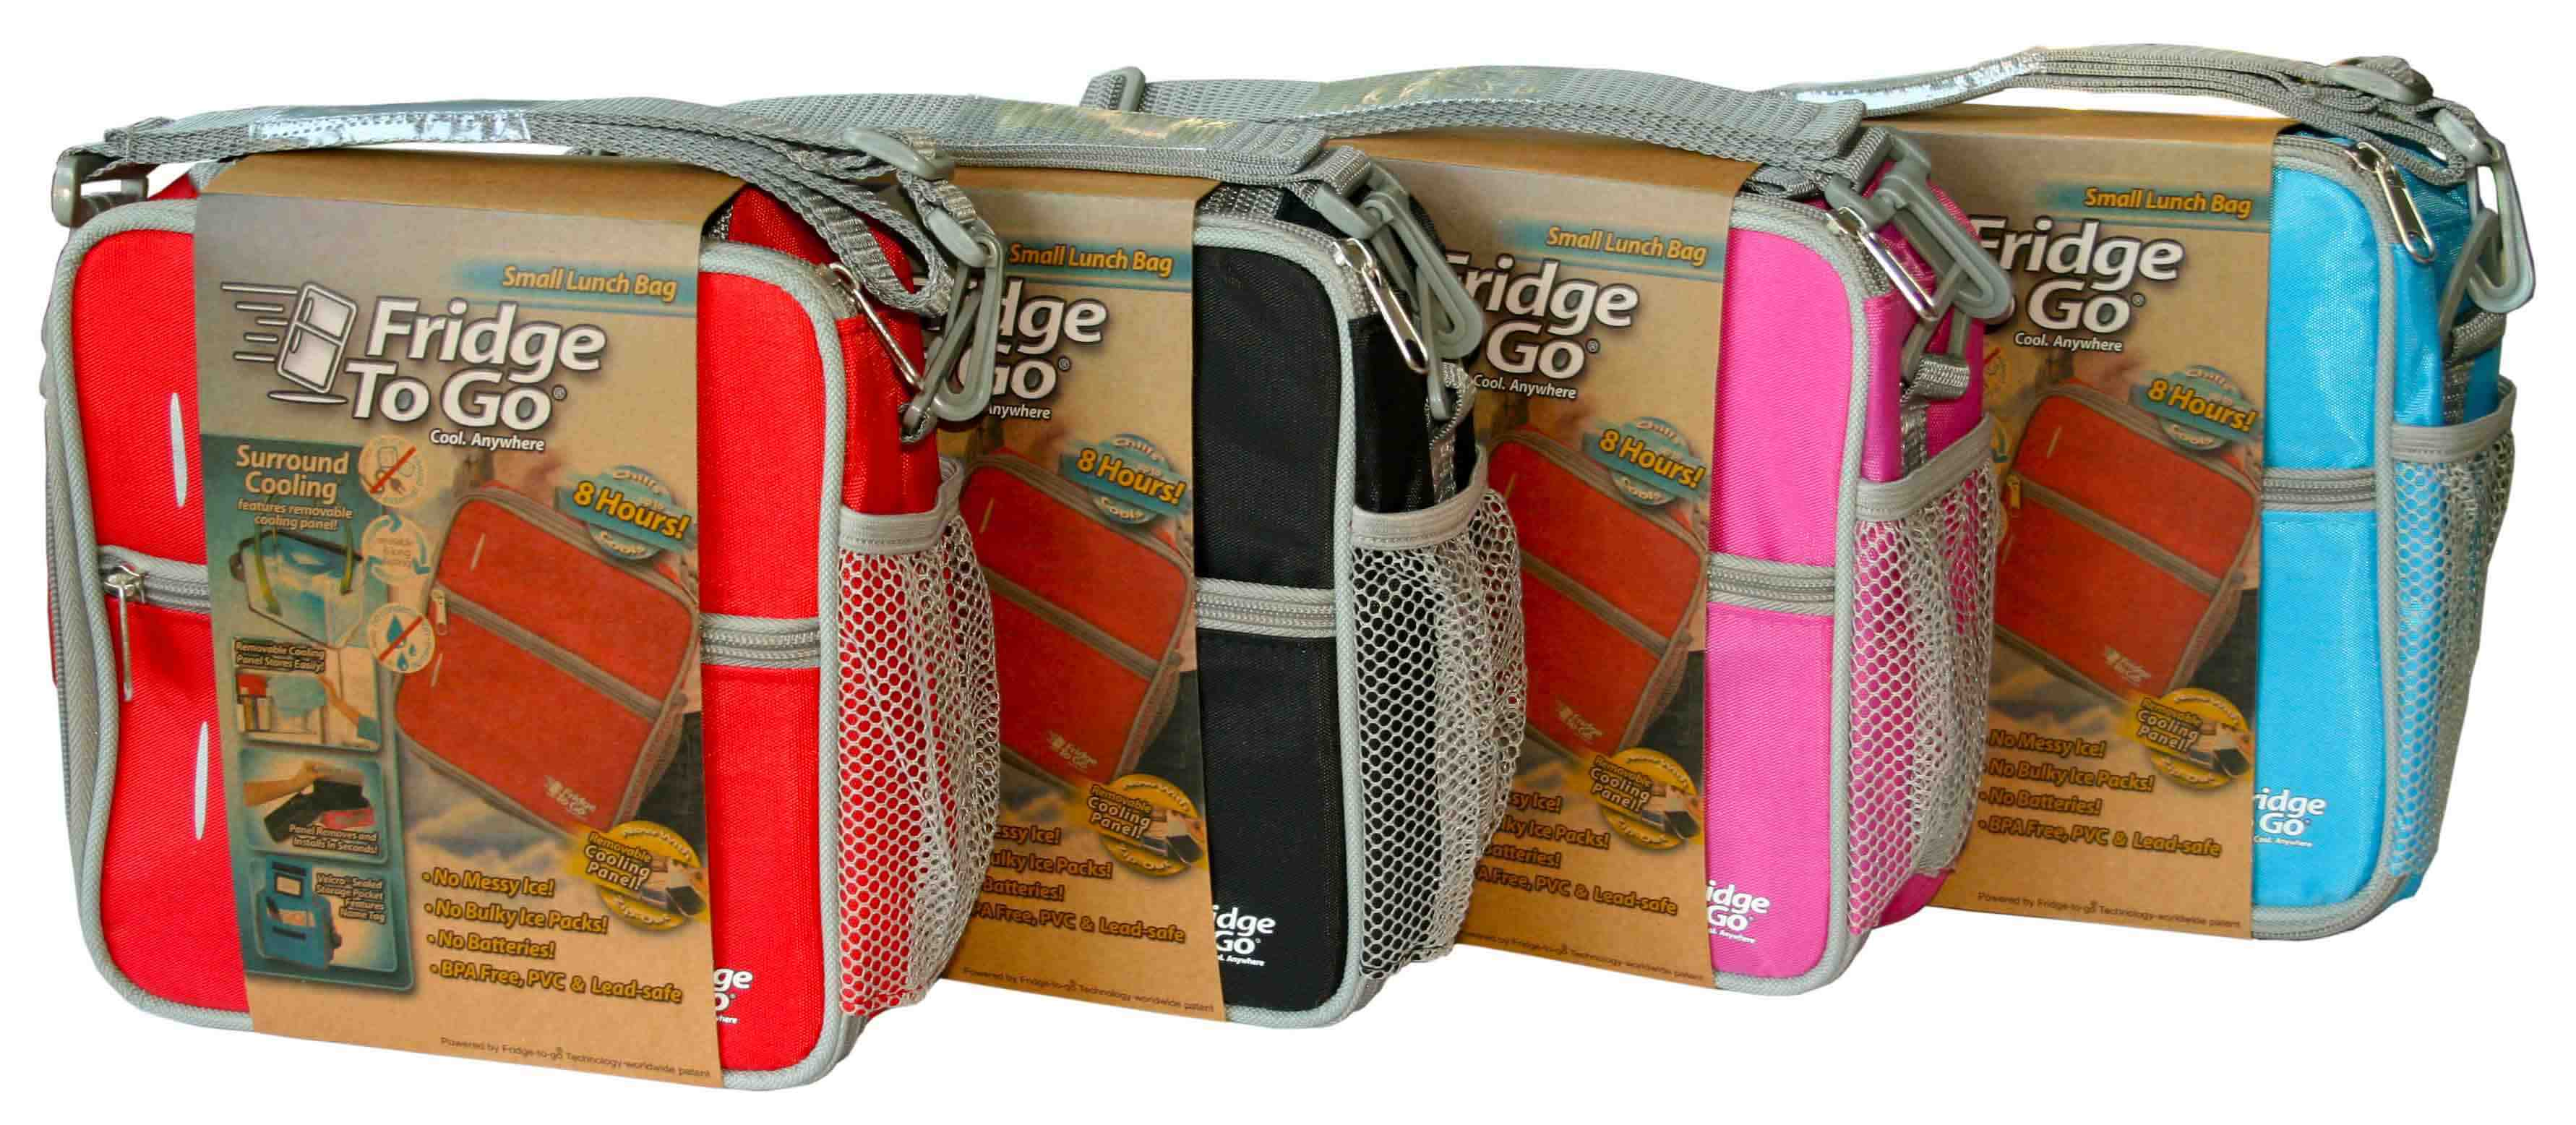 Esky Cooler Bag Fridge To Go Small Cooler Bag Lunch Box Esky Keep Cool For 8 Hours